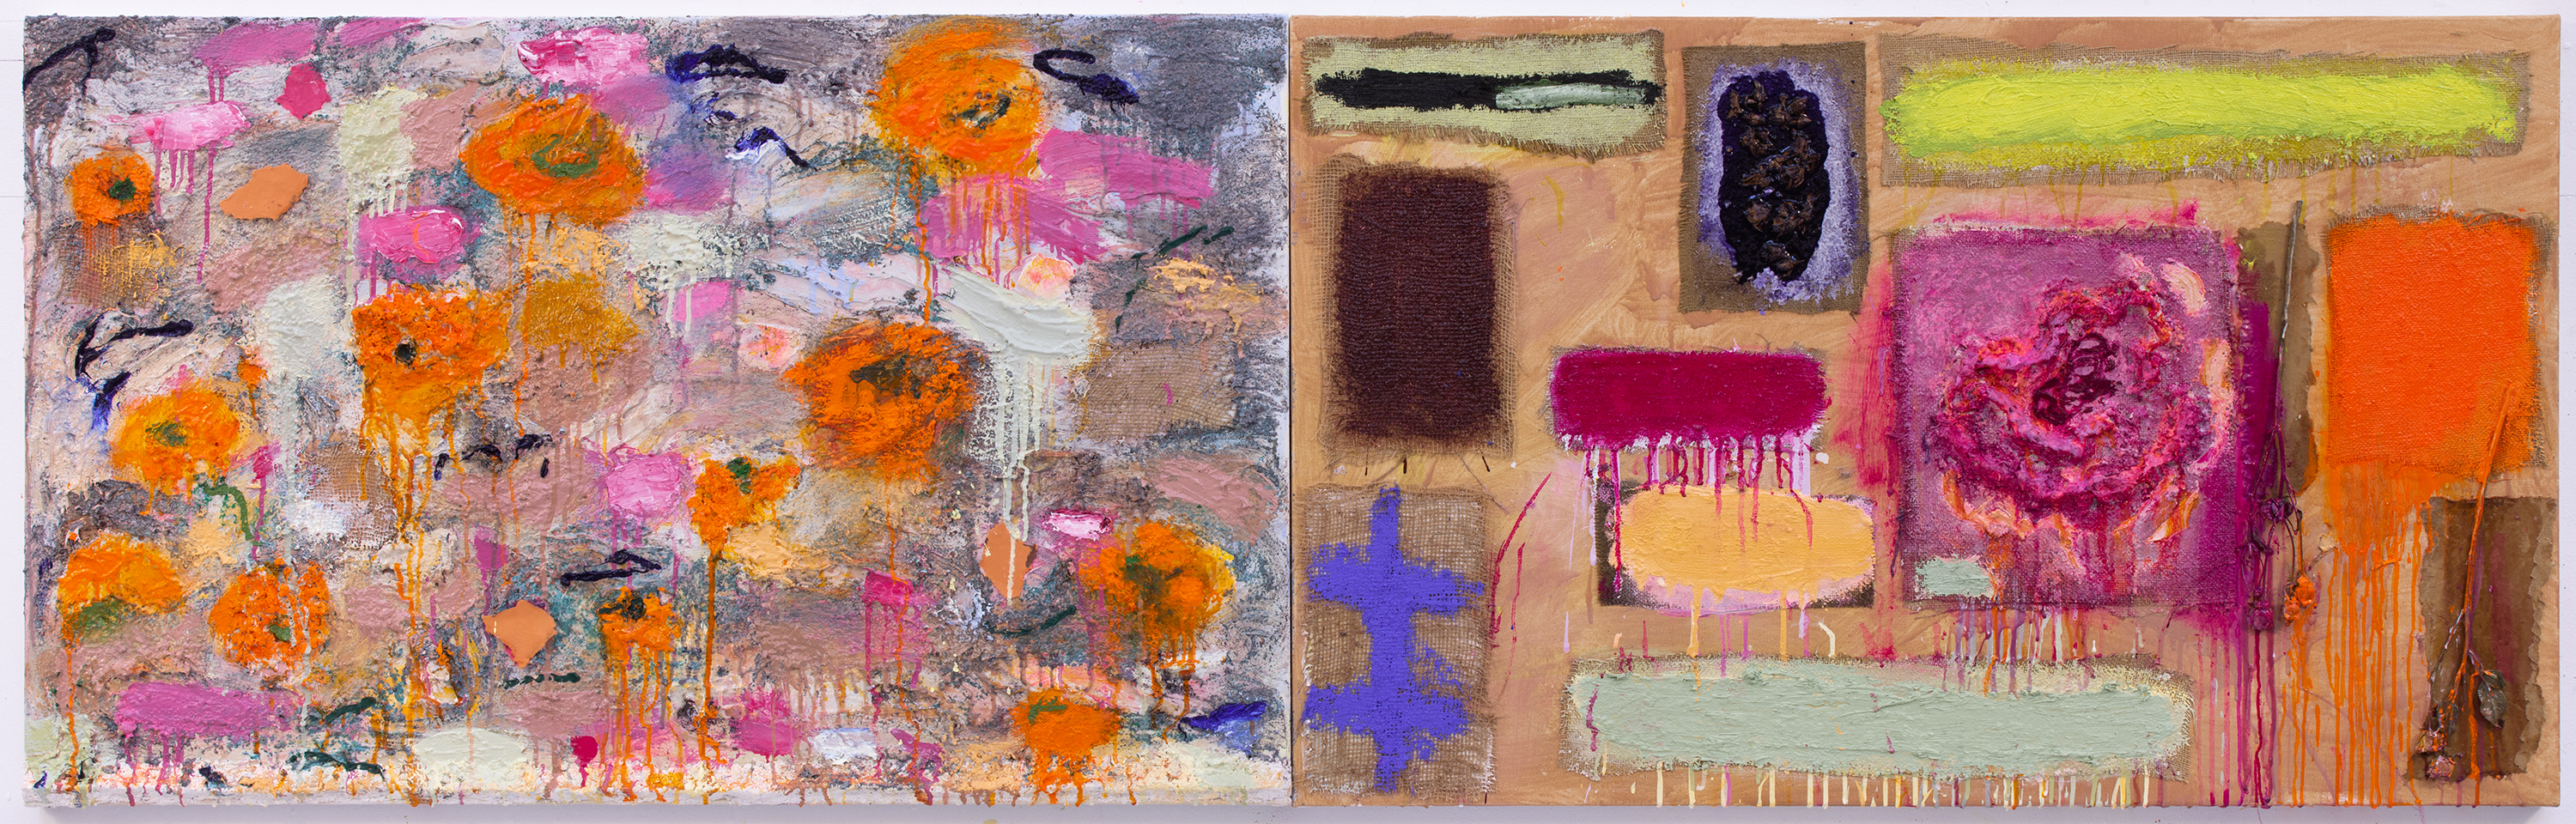 "Joan Snyder, ""Field Marks,"" 2019. Oil, acrylic, burlap, paper, rose stems on canvas 30 × 96 inches (76.20 × 243.84 cm). Courtesy the artist and Canada New York."